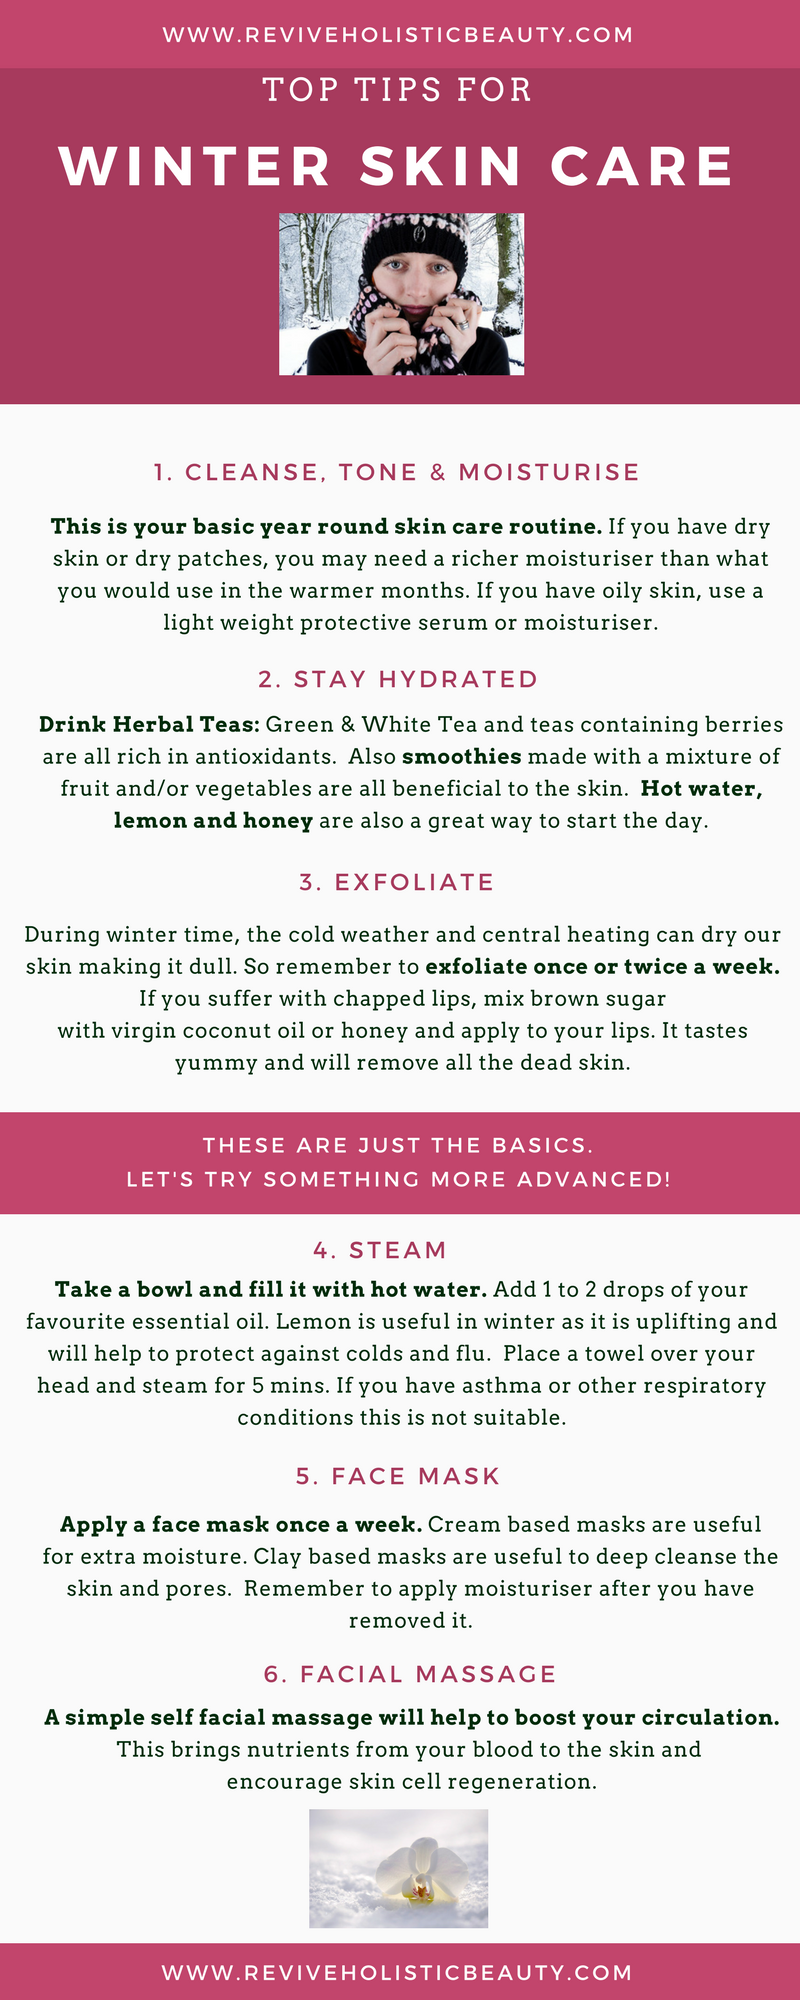 Top Tips for Winter Skin Care